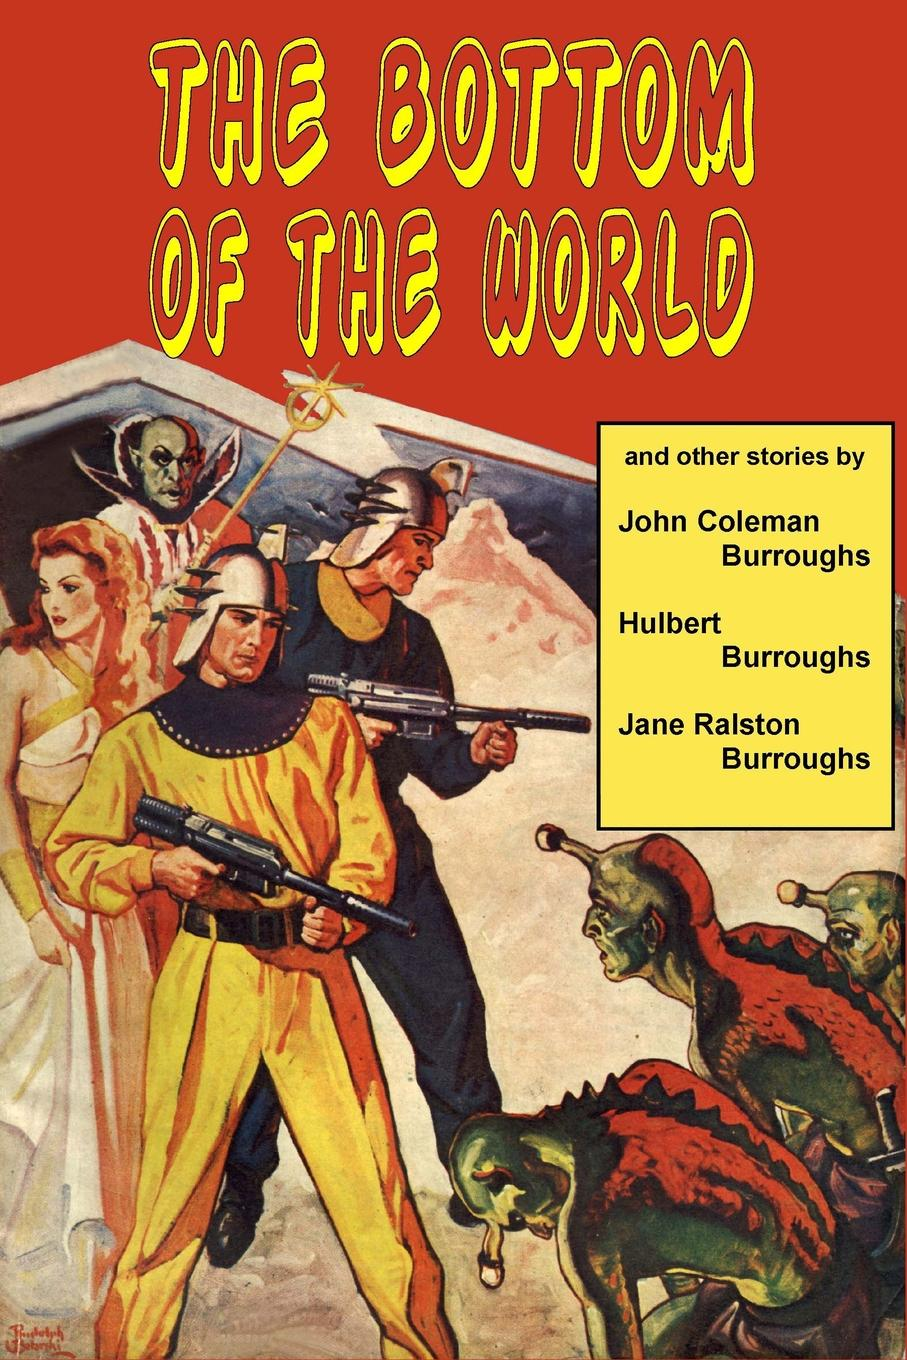 John Coleman Burroughs, Hulbert Burroughs, Jane Ralston Burroughs The Bottom of the World and Other Stories stories from the world of tomorrow